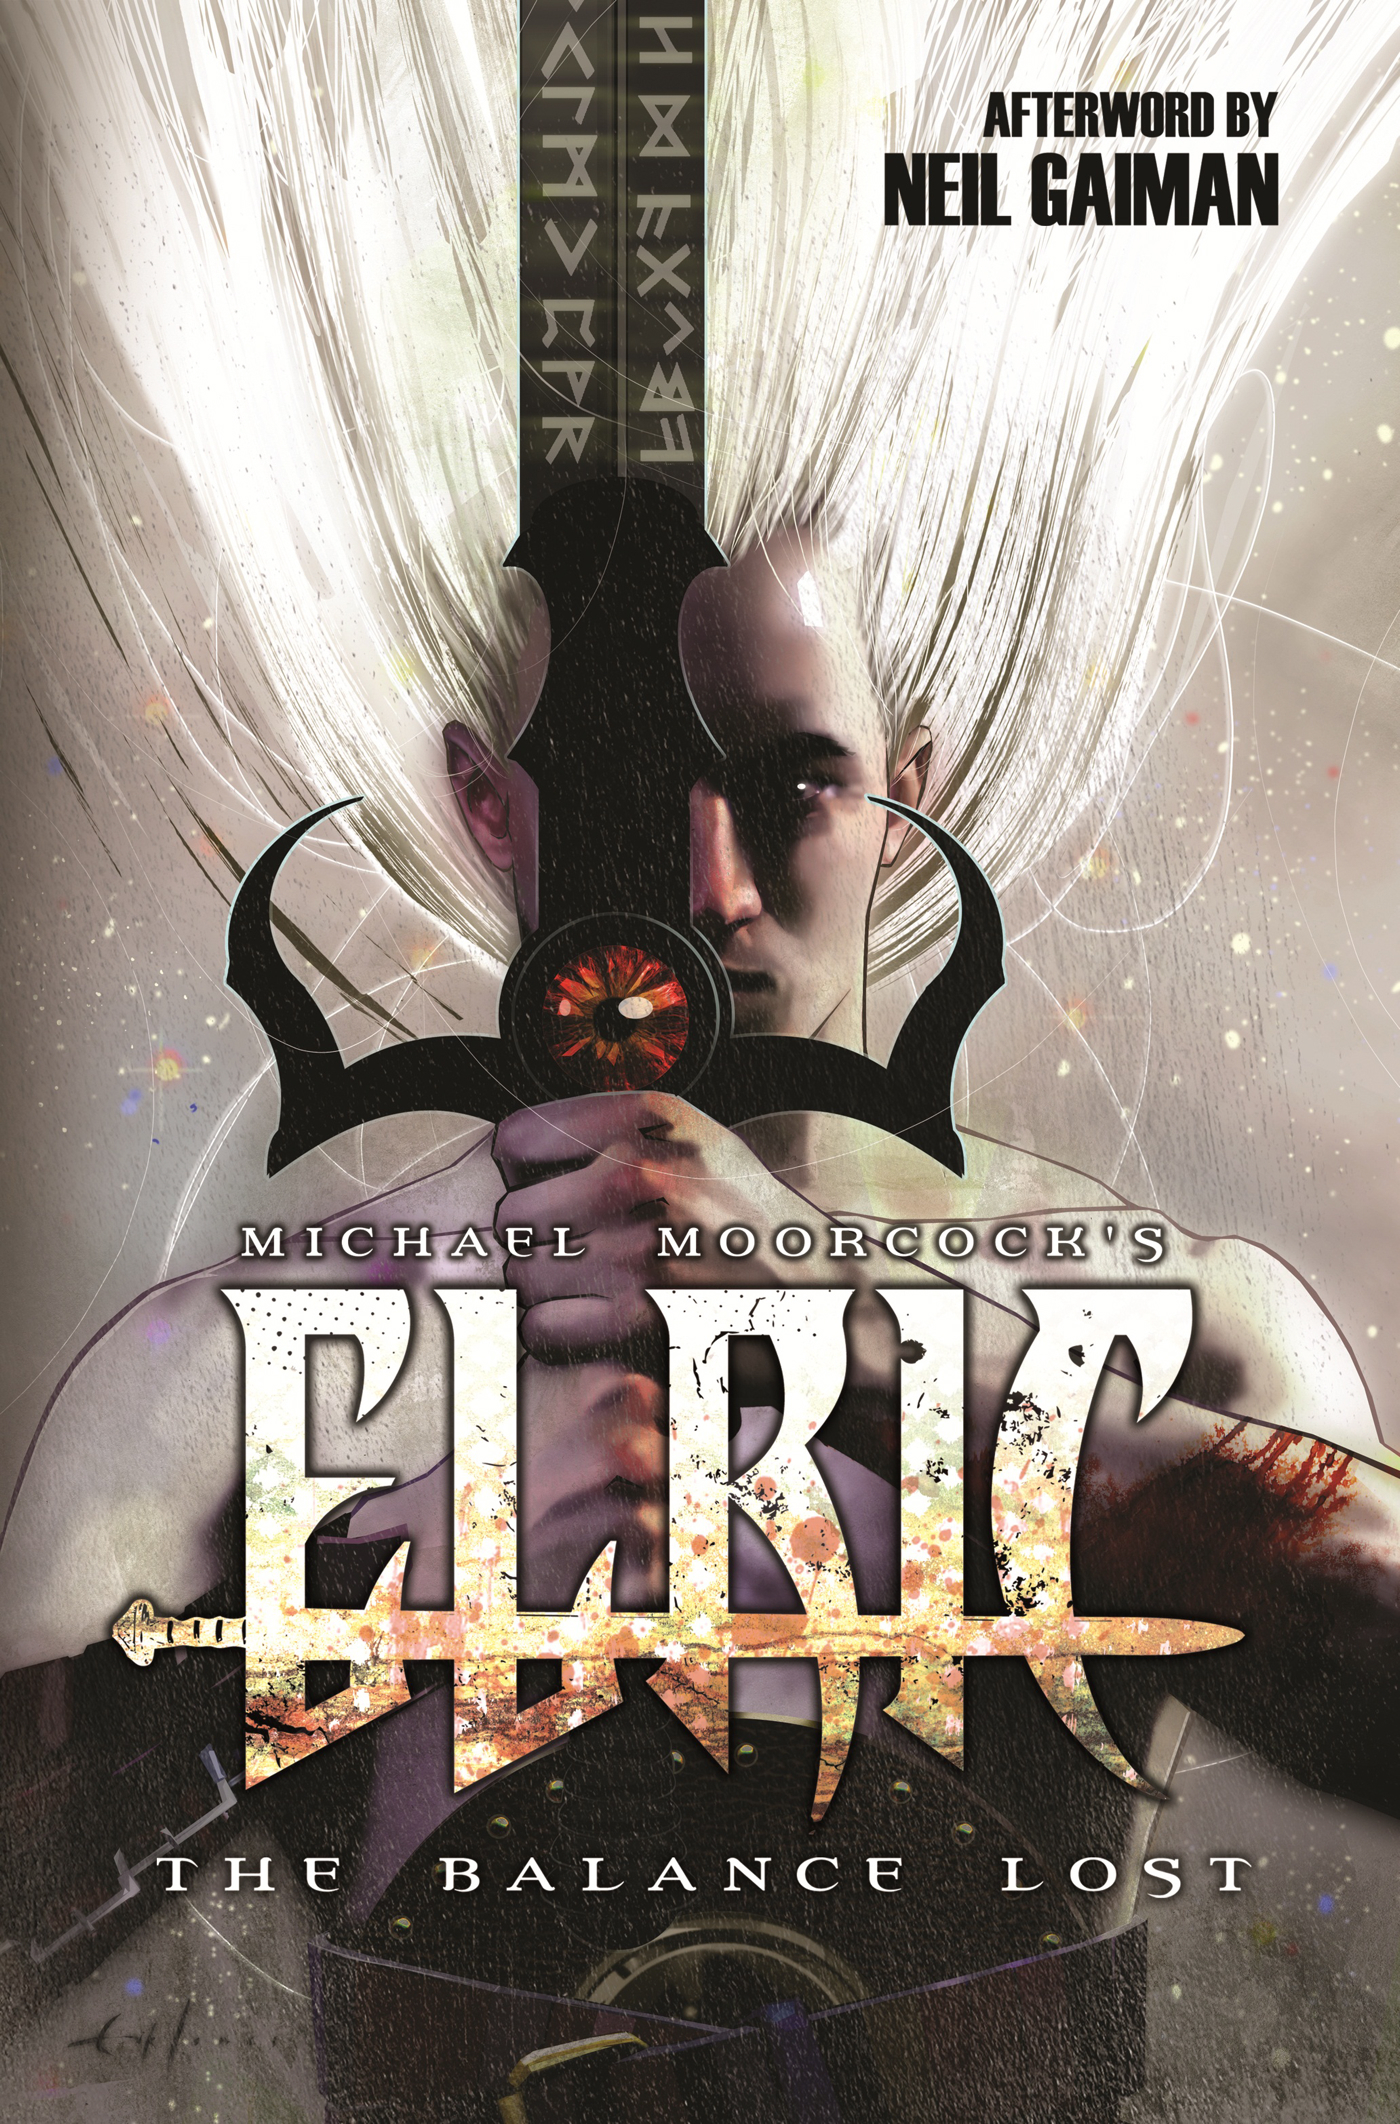 Elric-the-balance-lost-vol-1-9781608860487_hr